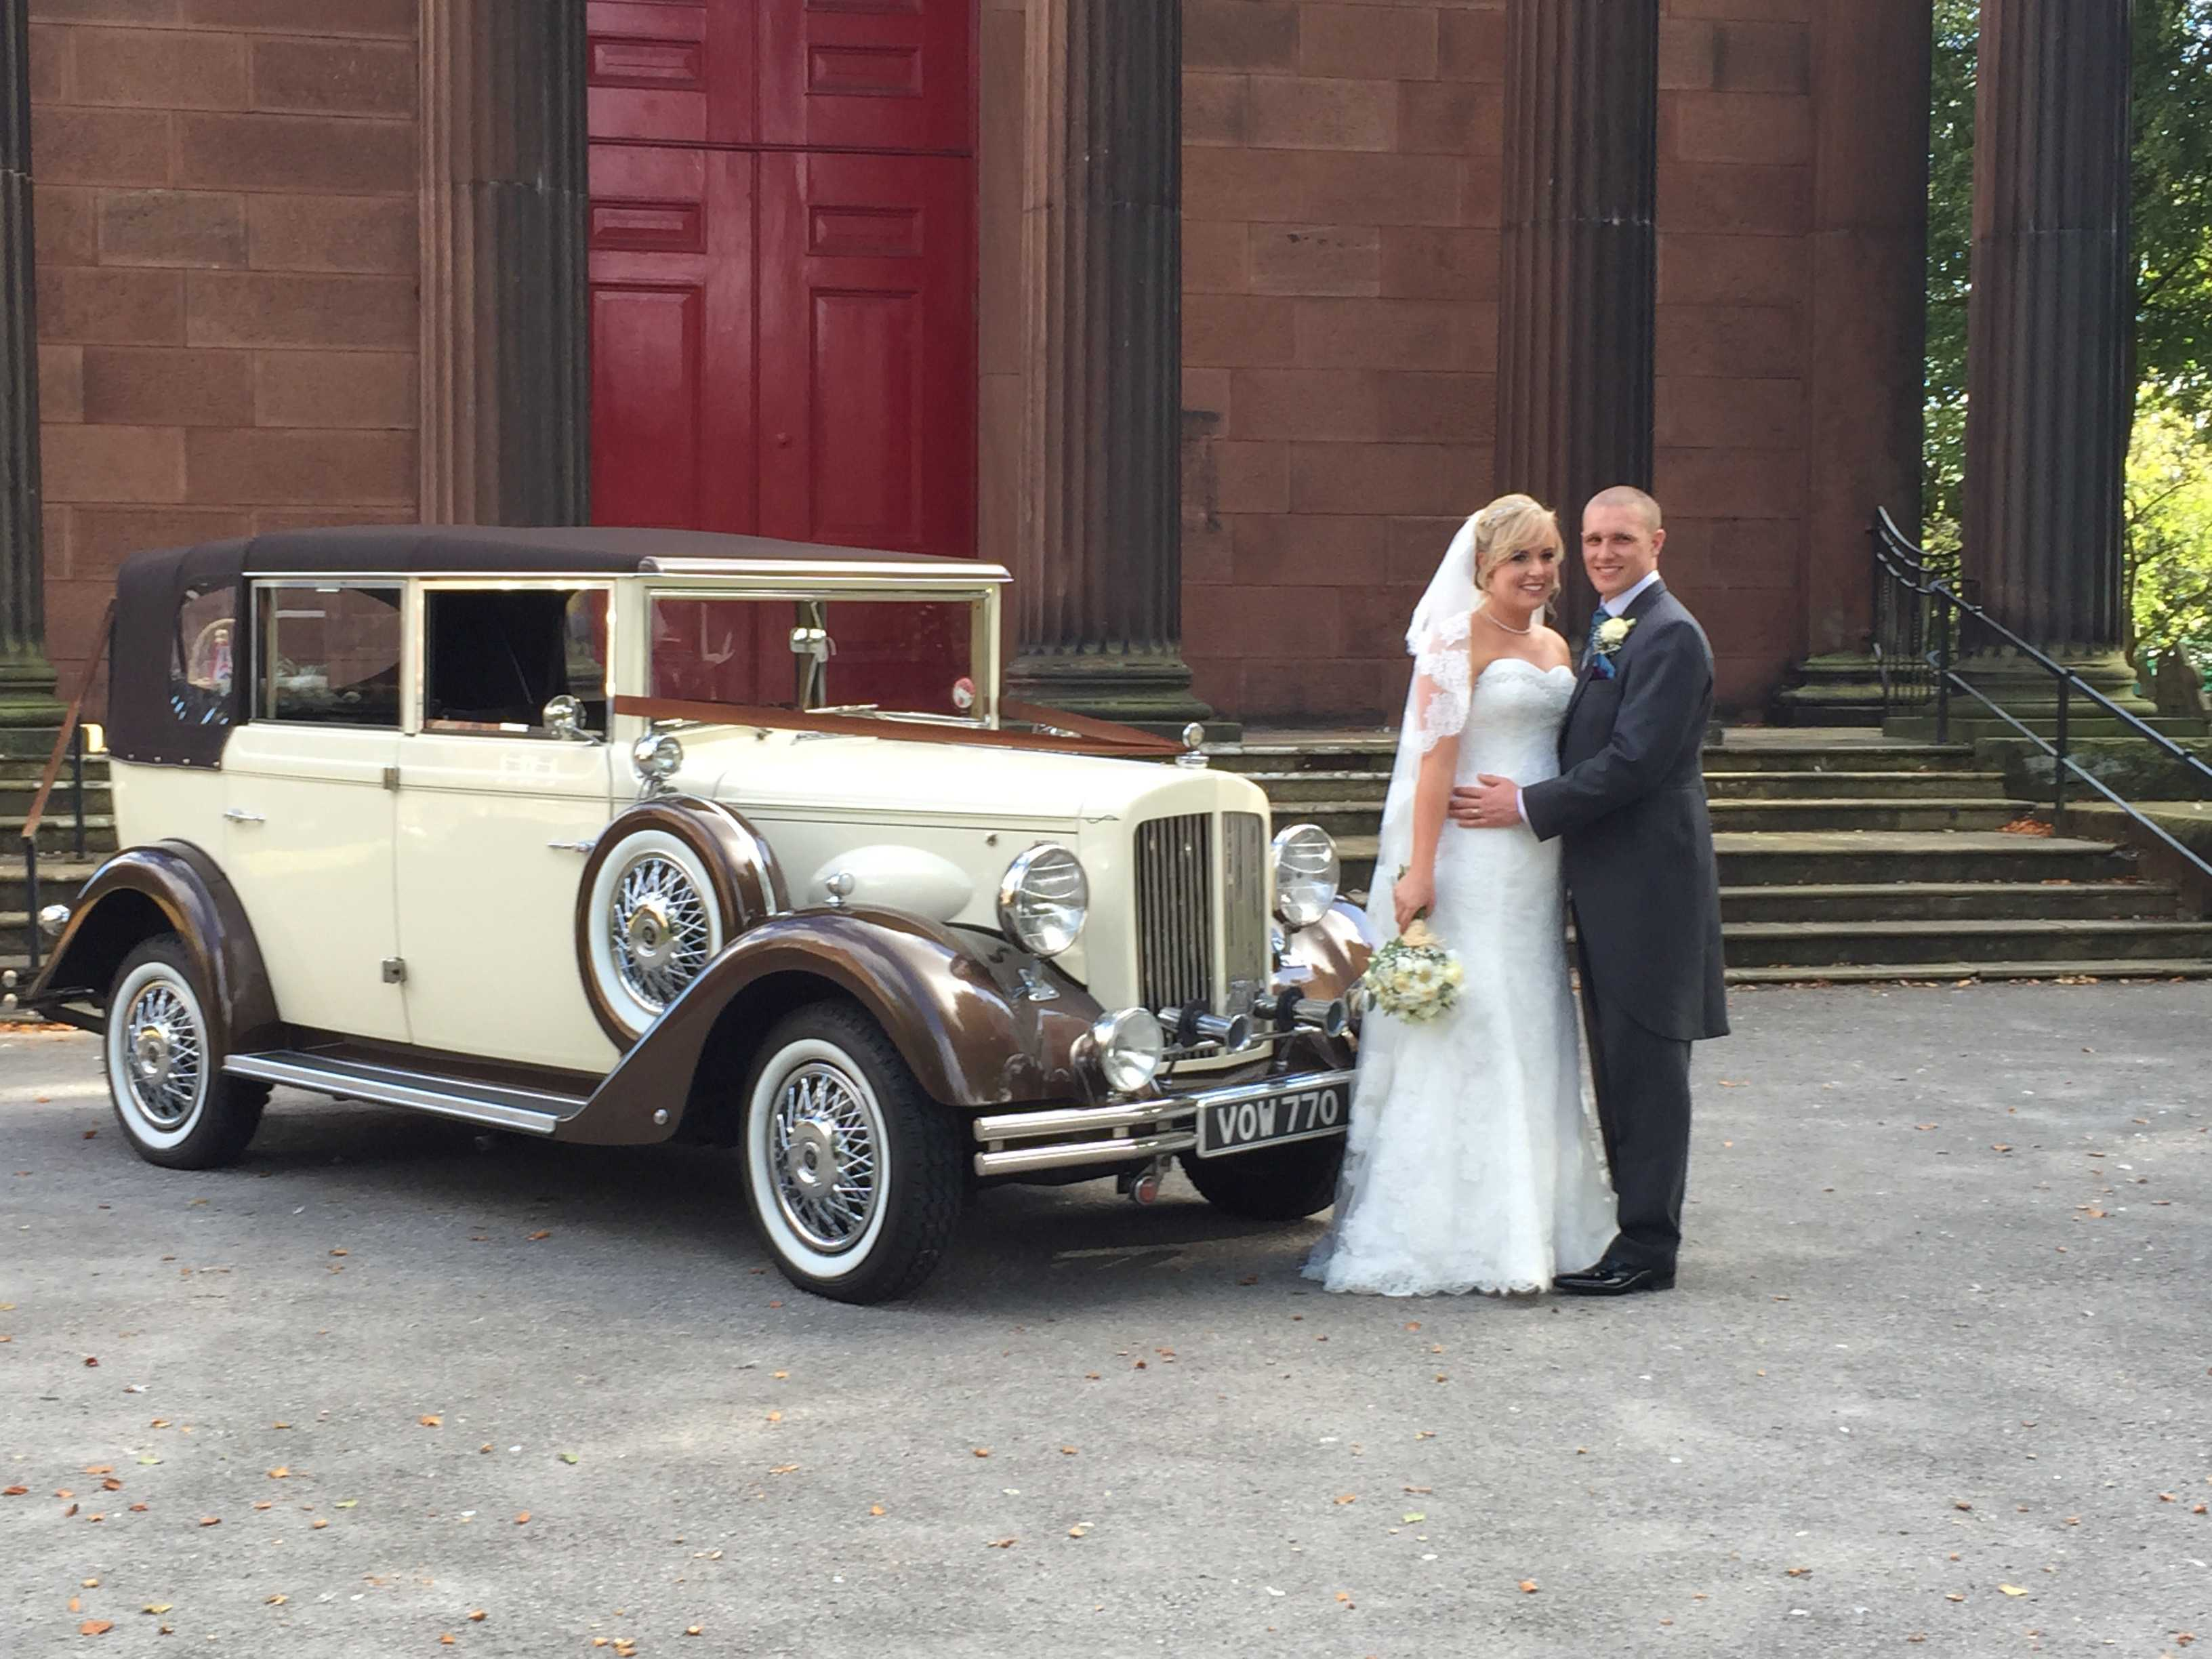 Bride and groom in front of a vintage car